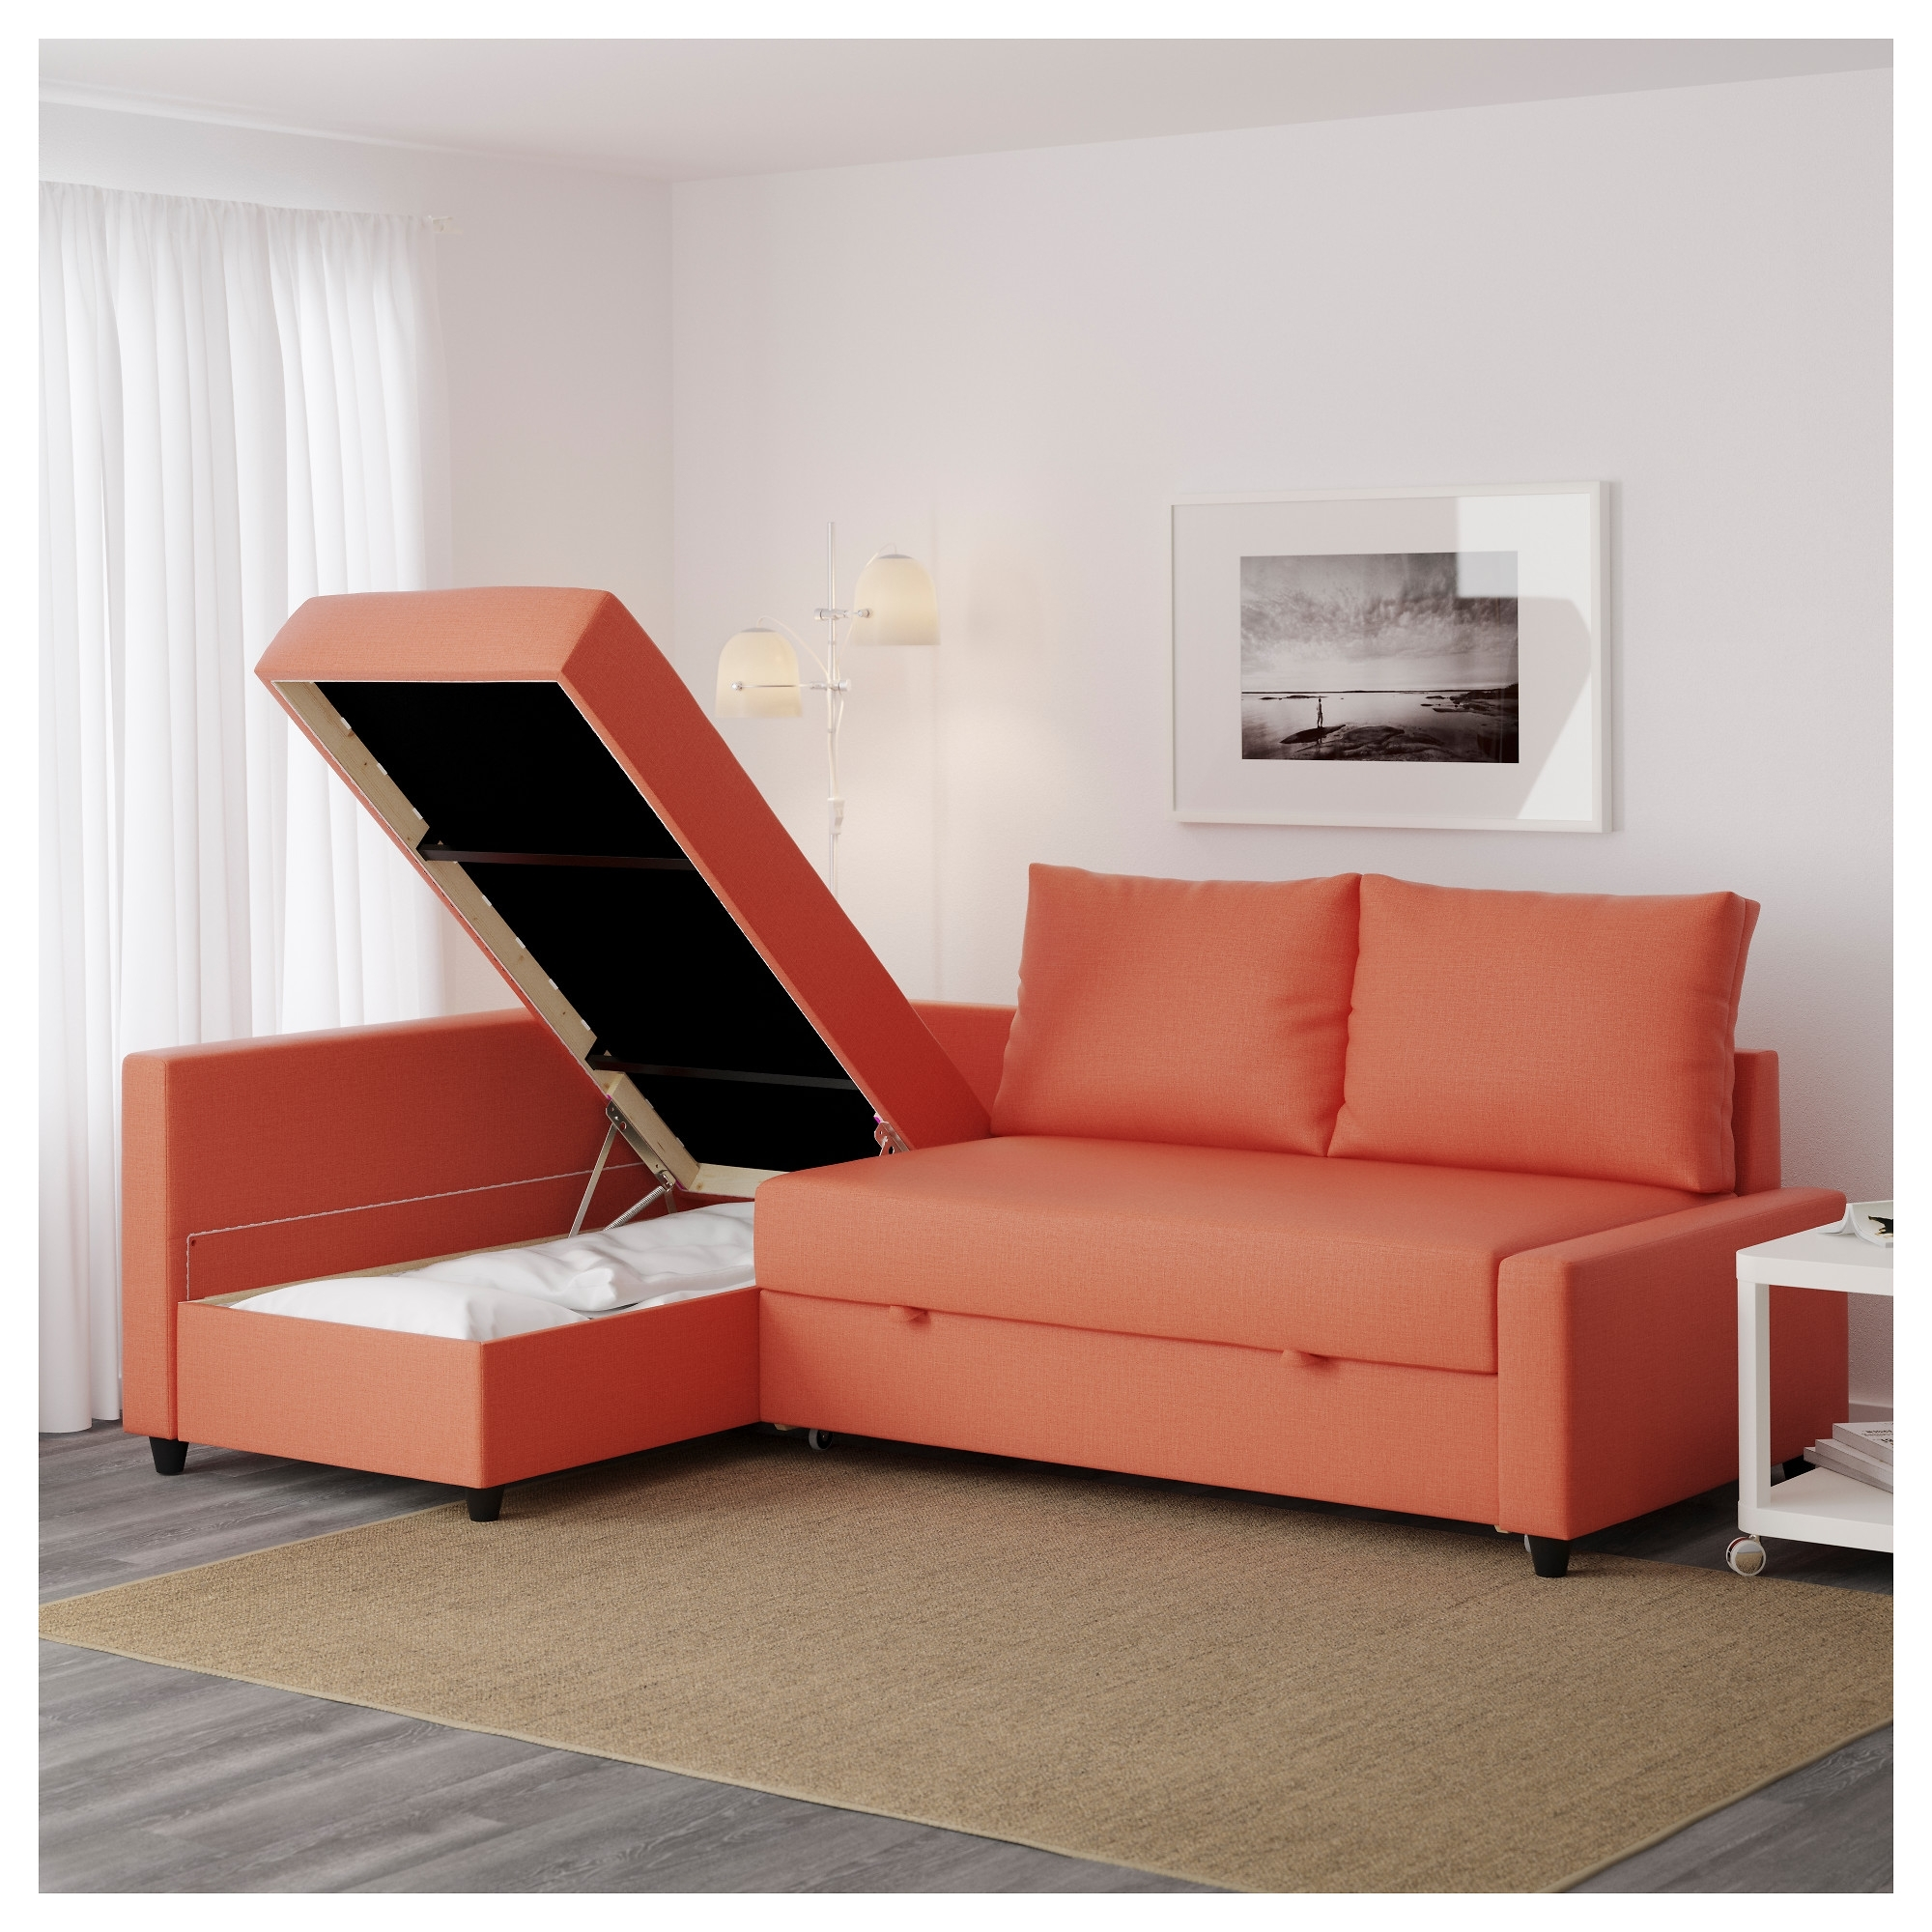 Friheten Corner Sofa Bed With Storage Skiftebo Dark Orange – Ikea Regarding Ikea Corner Sofas With Storage (View 8 of 10)